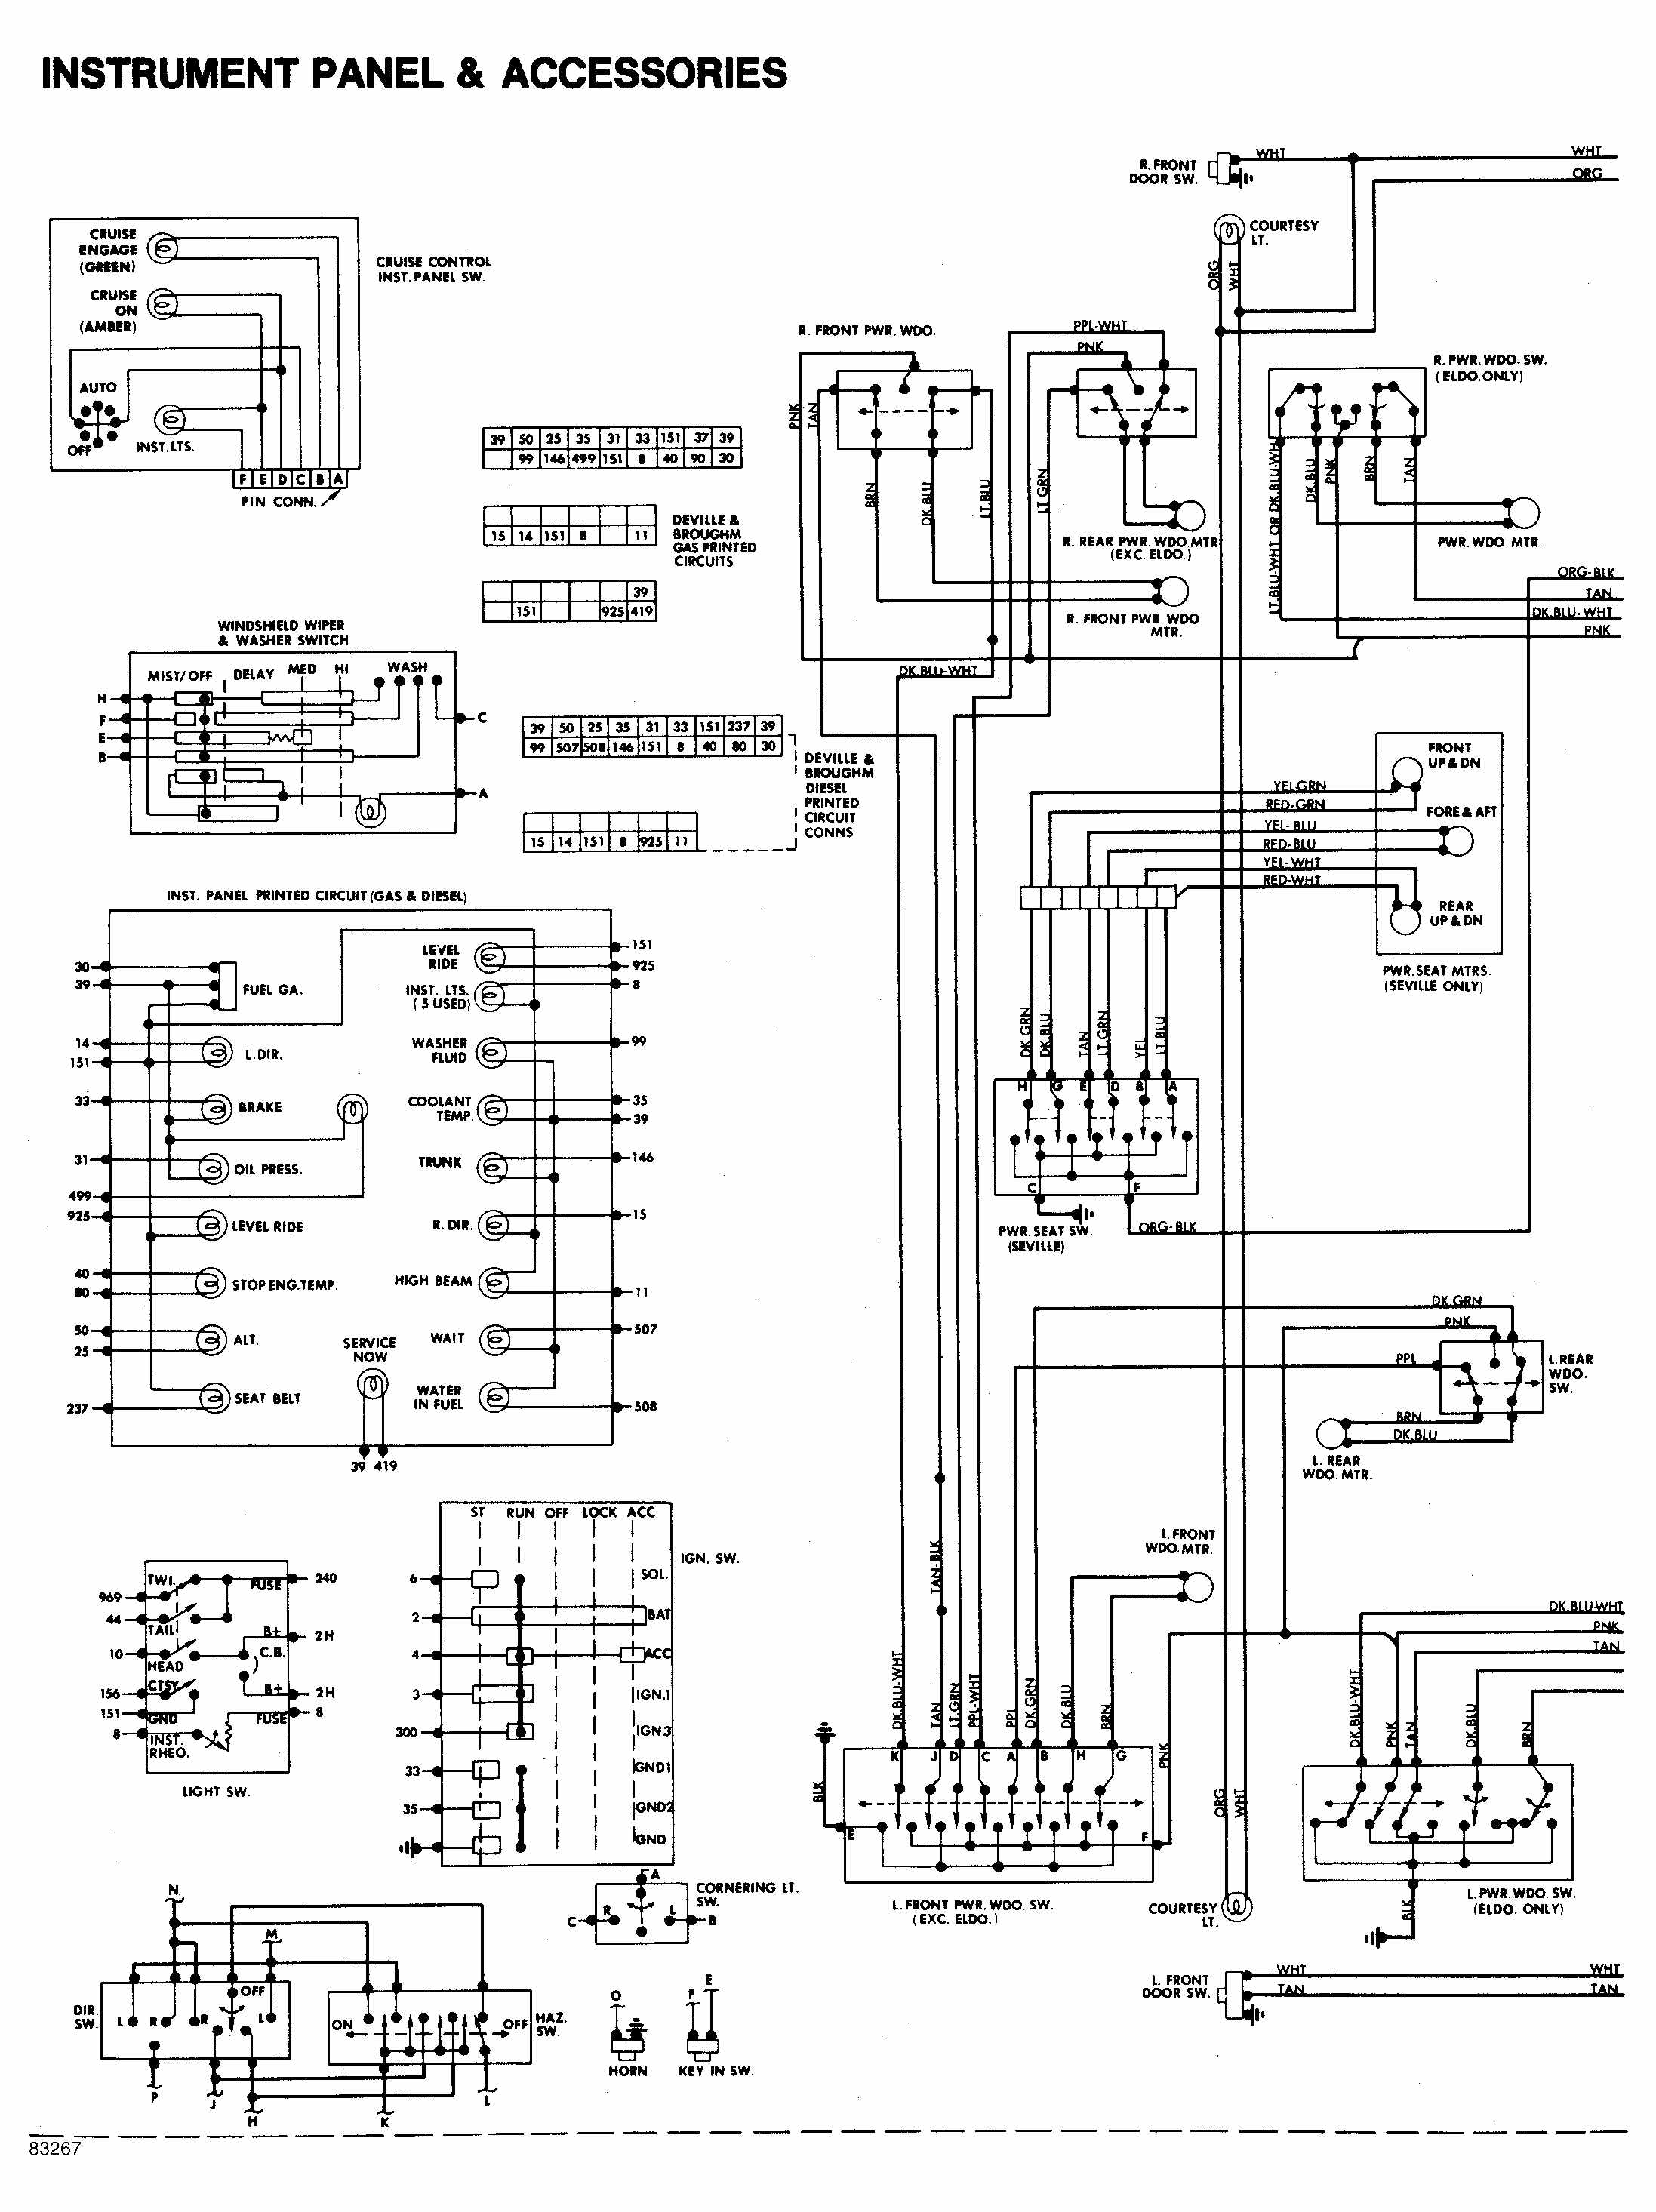 2002 cadillac deville factory amp wiring diagram Collection-2001 cadillac deville alarm wiring diagram wire center u2022 rh inkshirts co 1962 Cadillac Wiring 93 Cadillac DeVille Wiring Diagram 13-n